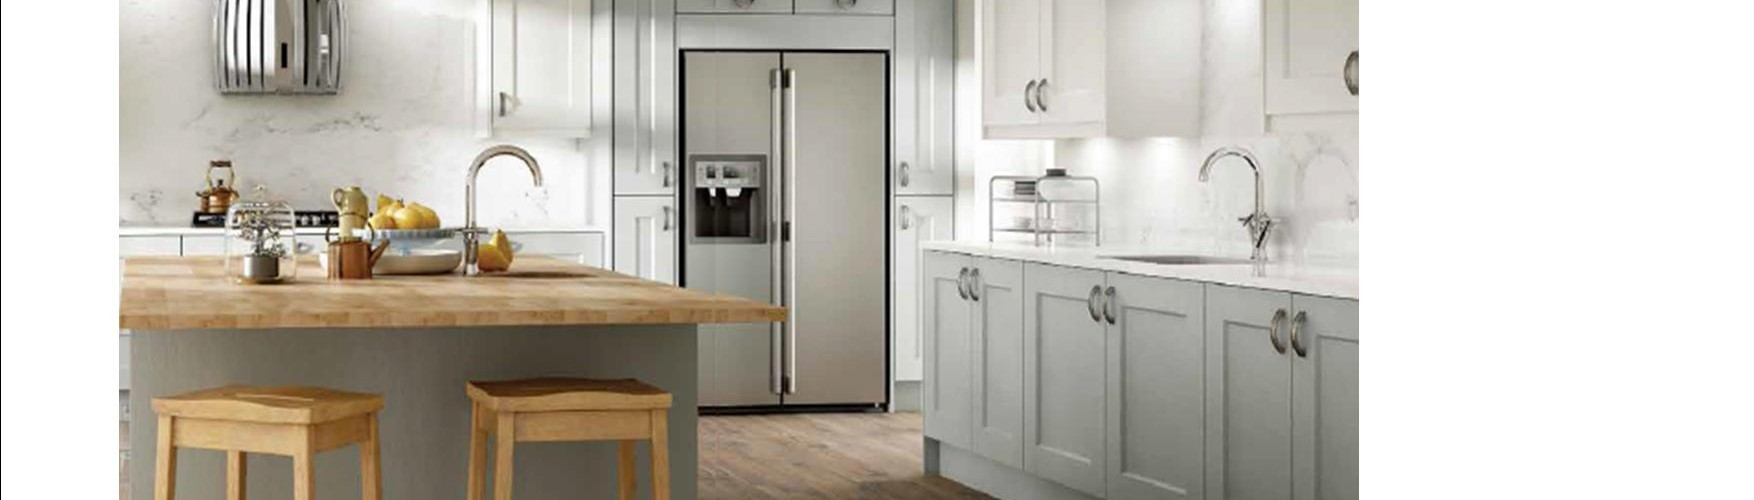 kings park kitchens glasgow kitchen design and fitting ashbourne